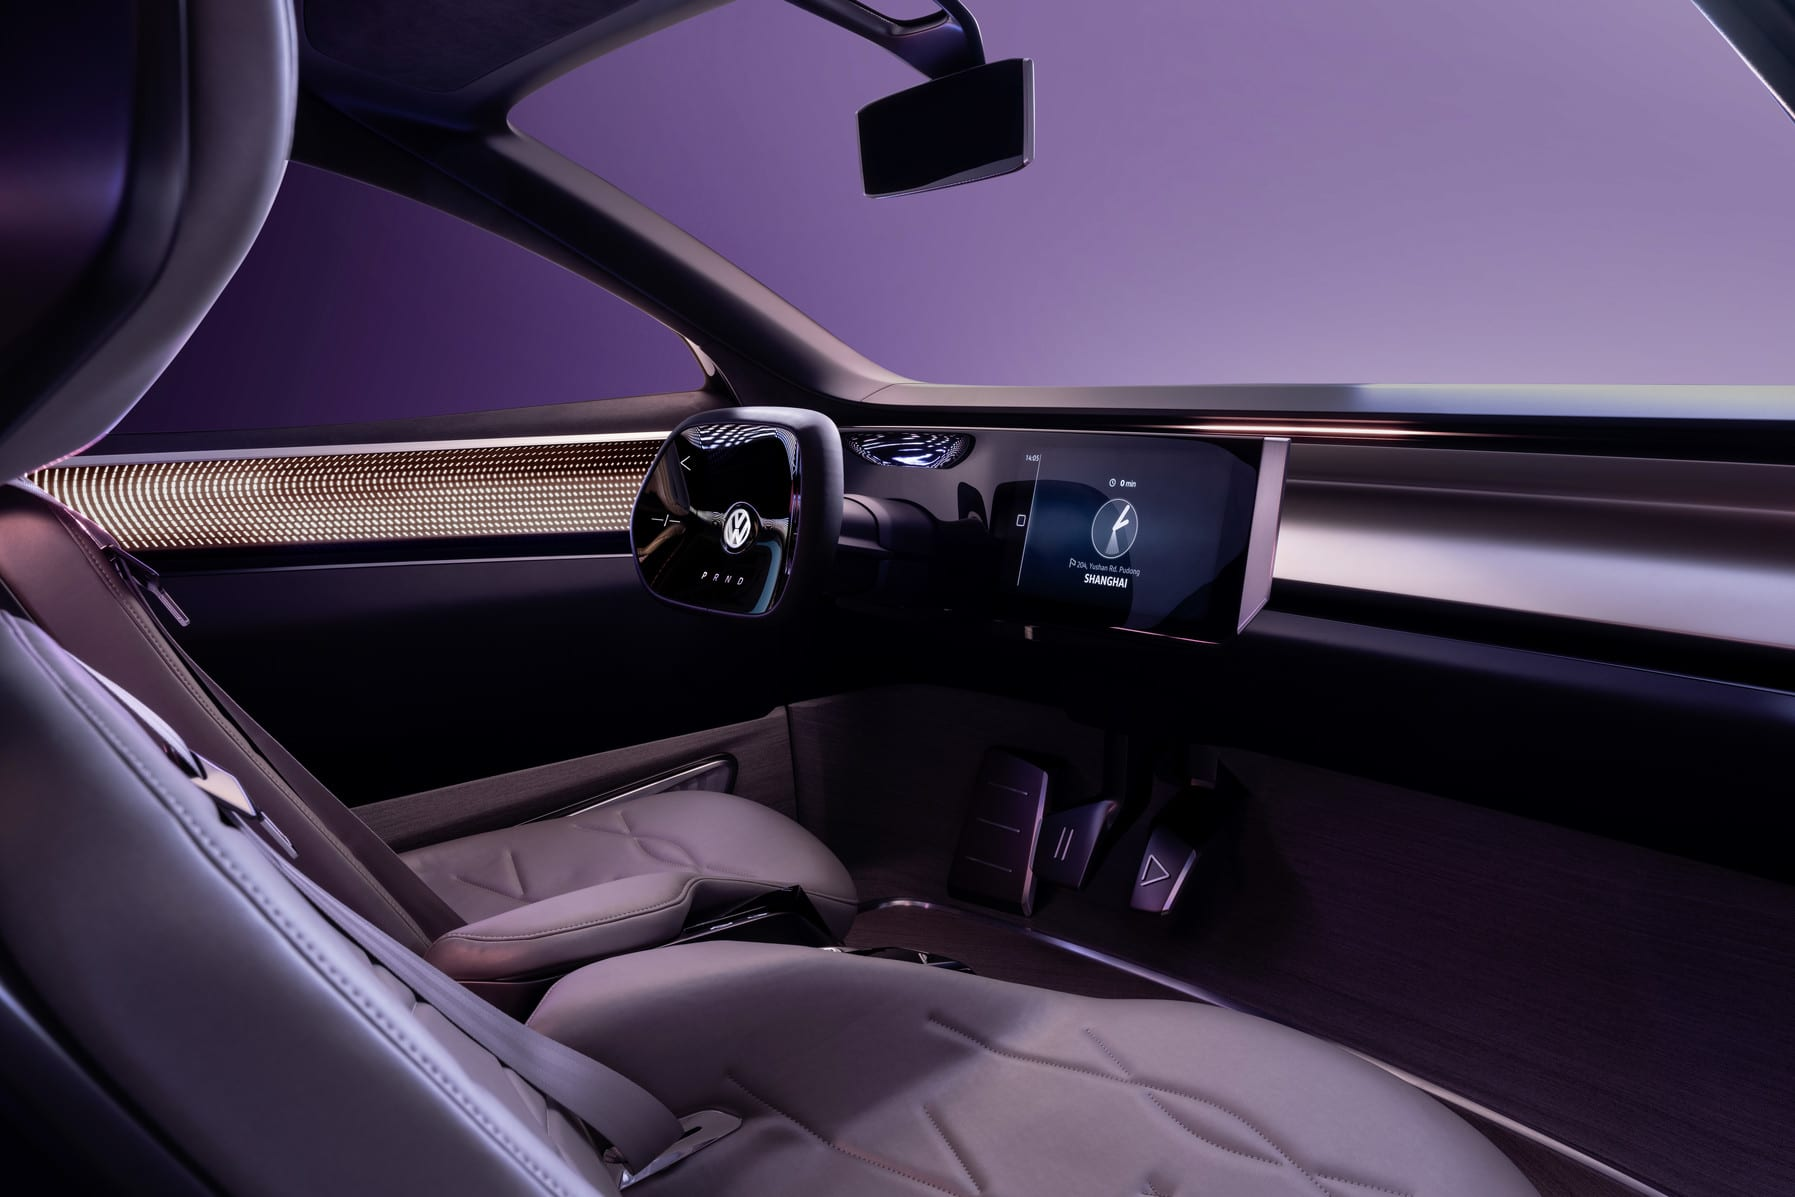 Volkswagen ID. ROOMZZ Electric SUV interior